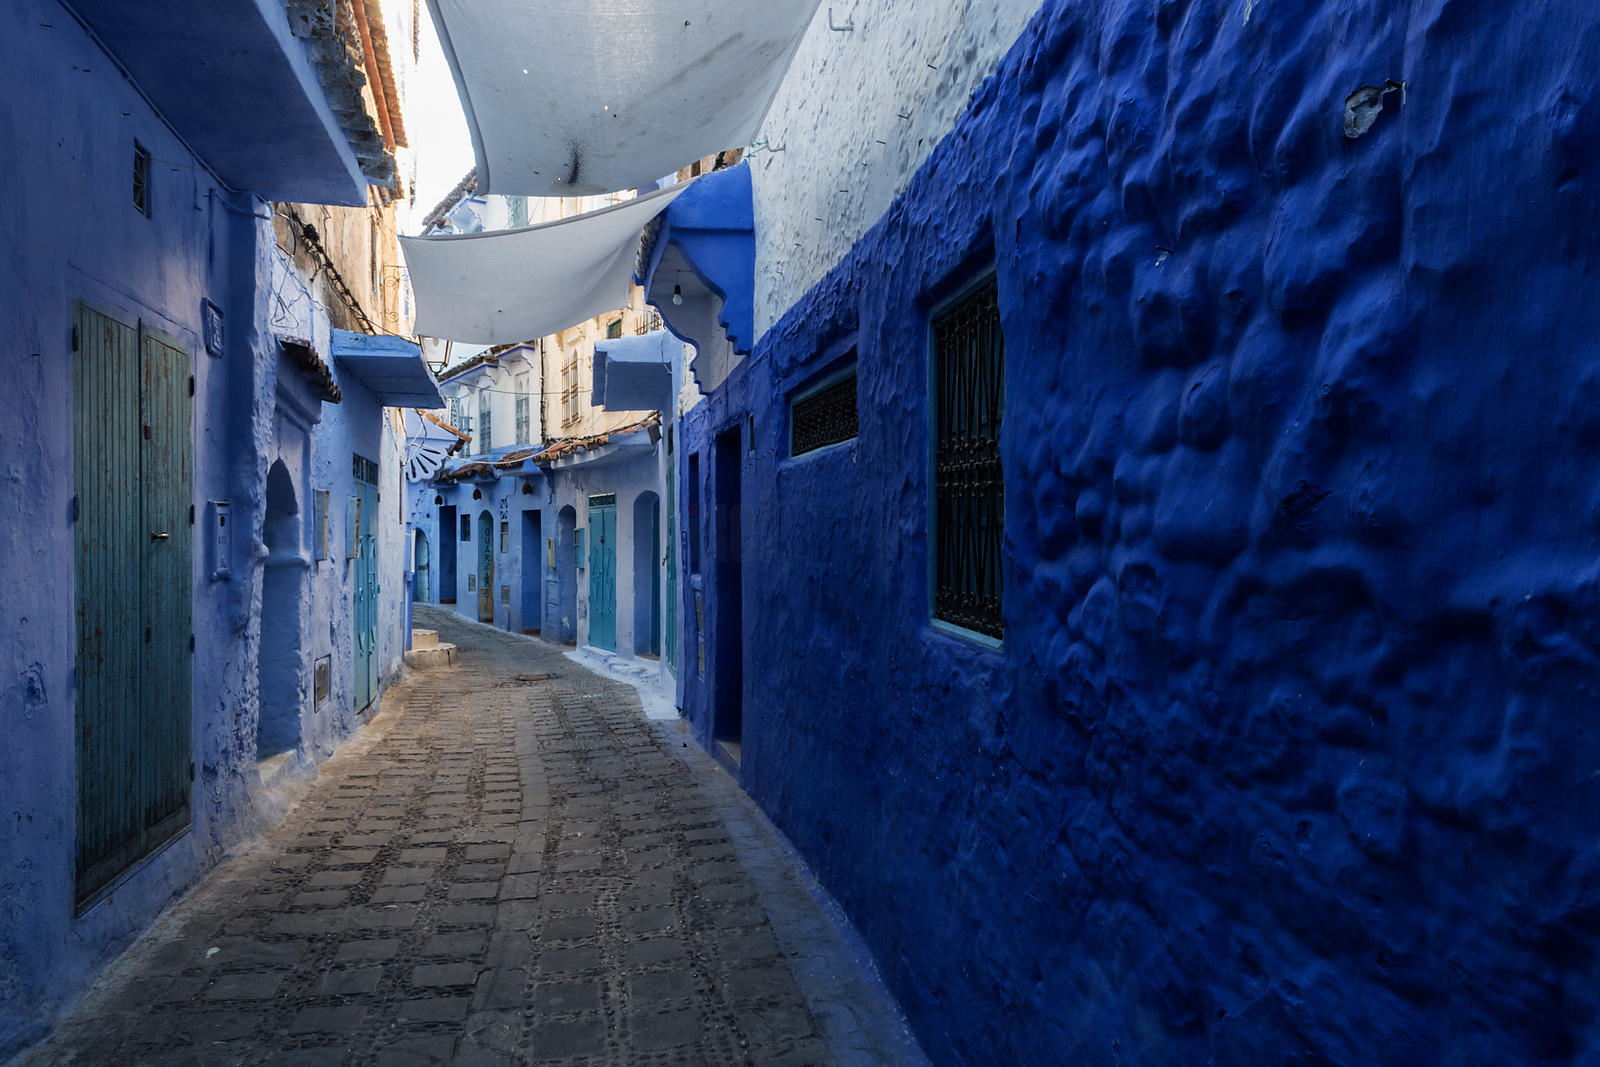 Colourful Street in the Blue City at Dawn